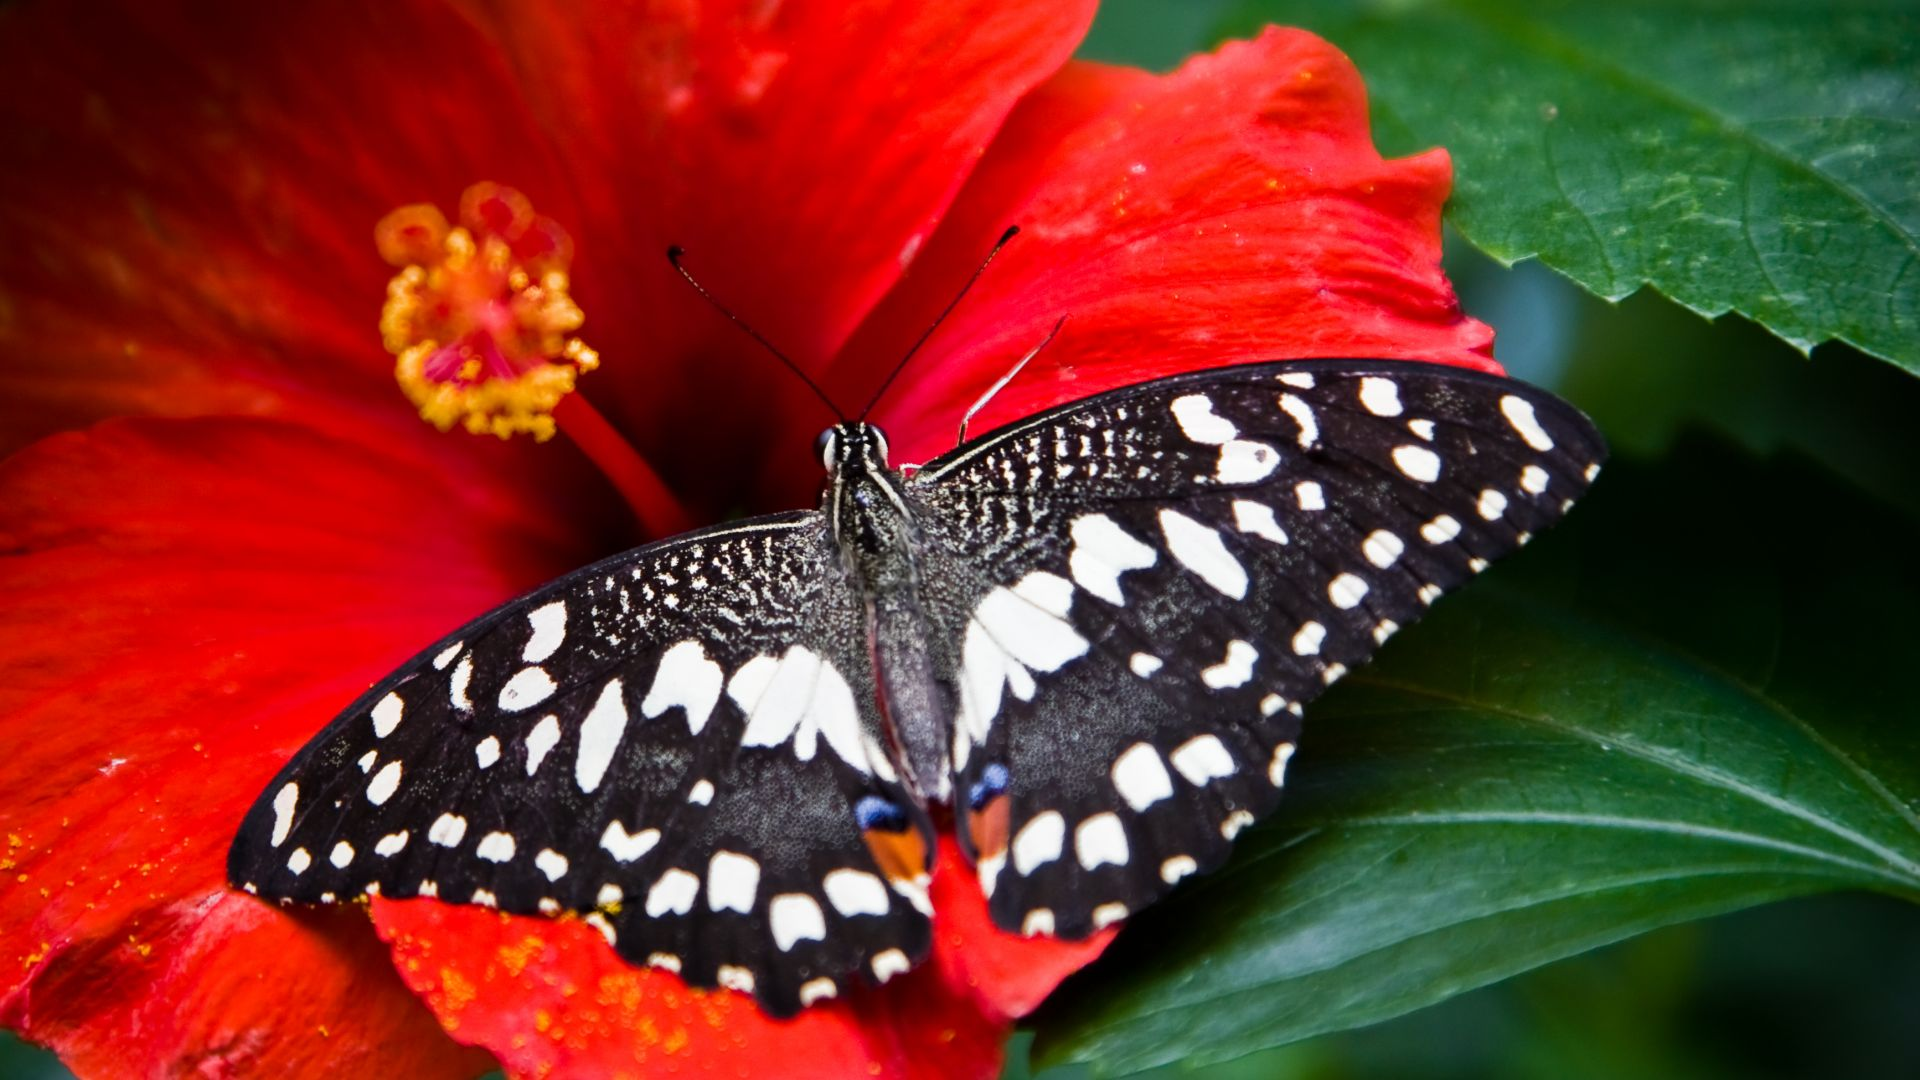 Butterfly, black-white, insects, flowers, Glass, nature, garden (horizontal)